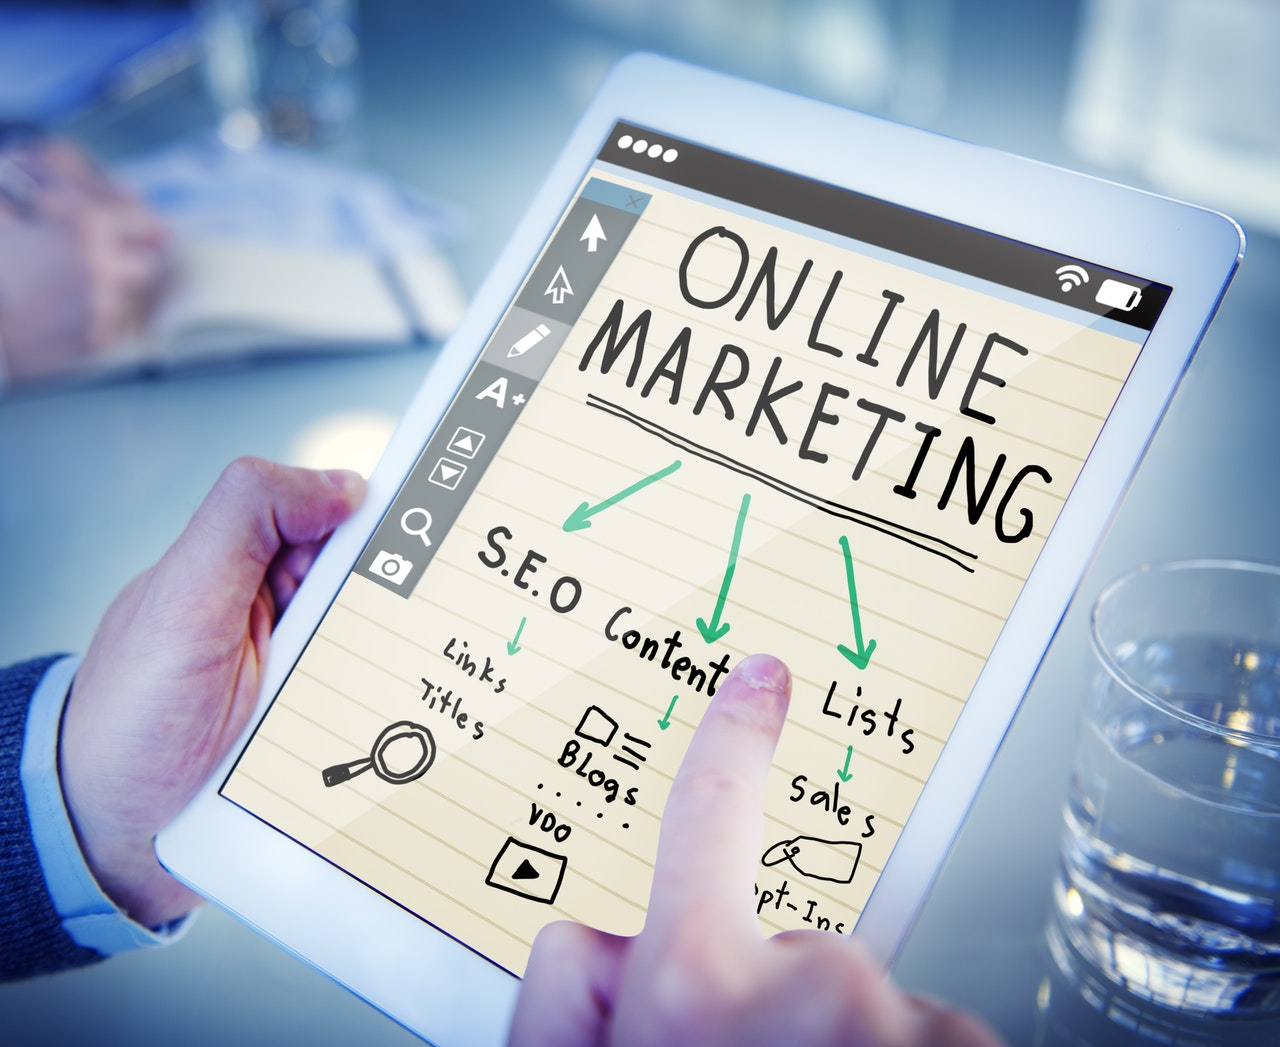 Website Advertising: Pay-Per-Click (PPC) or Search Engine Optimization (SEO)